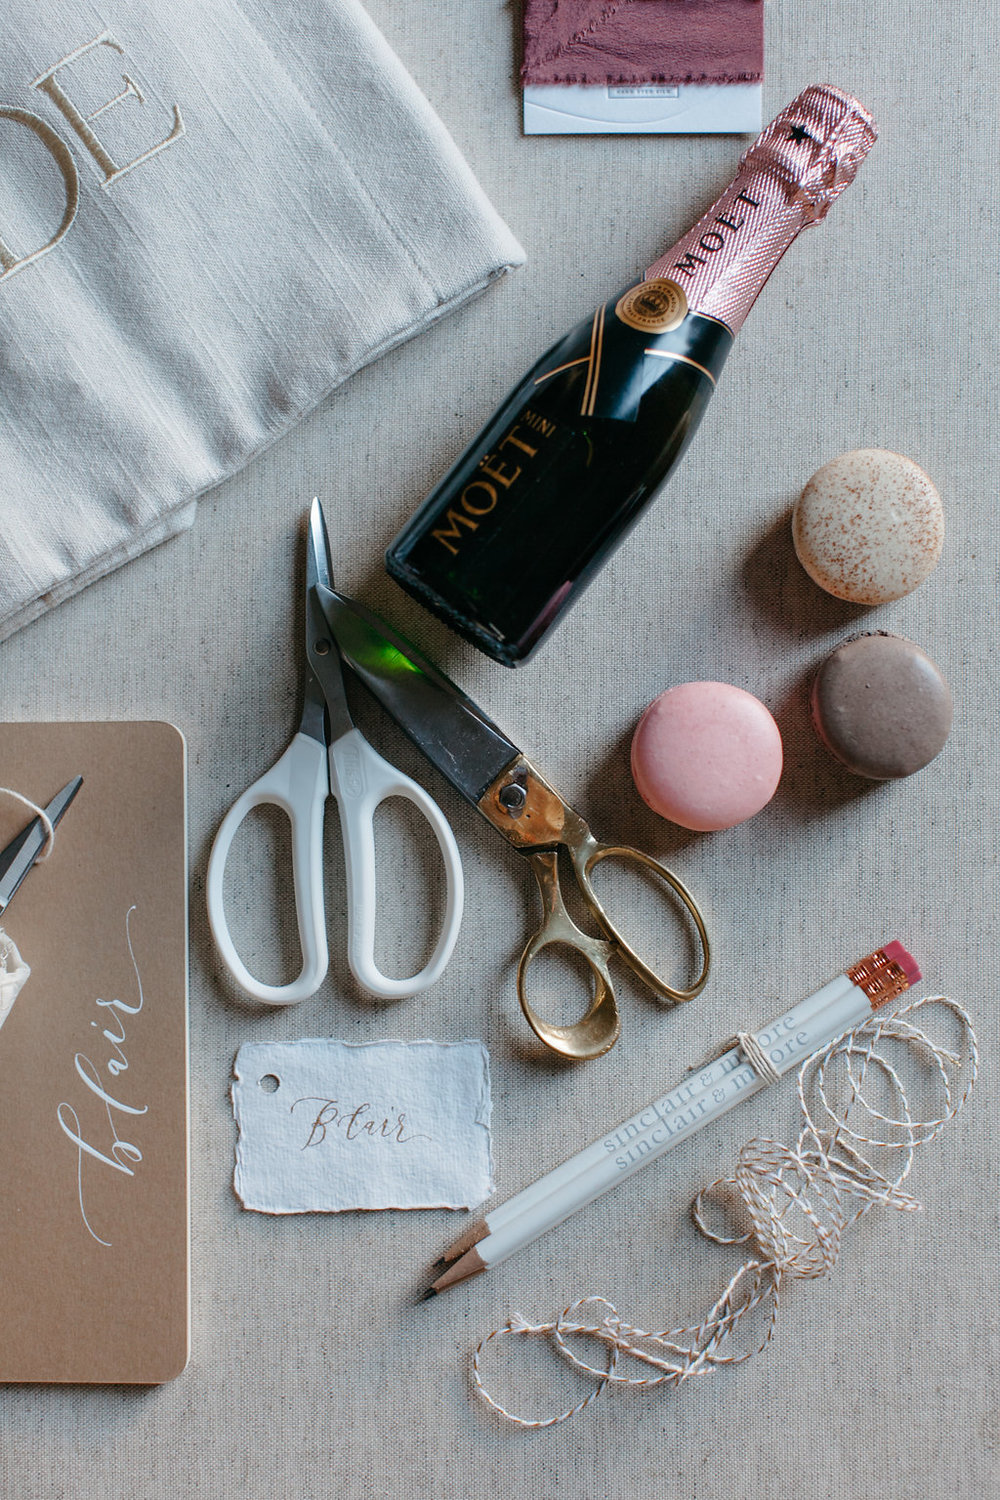 Wedding Welcome Gifts - Wedding Planning Ideas